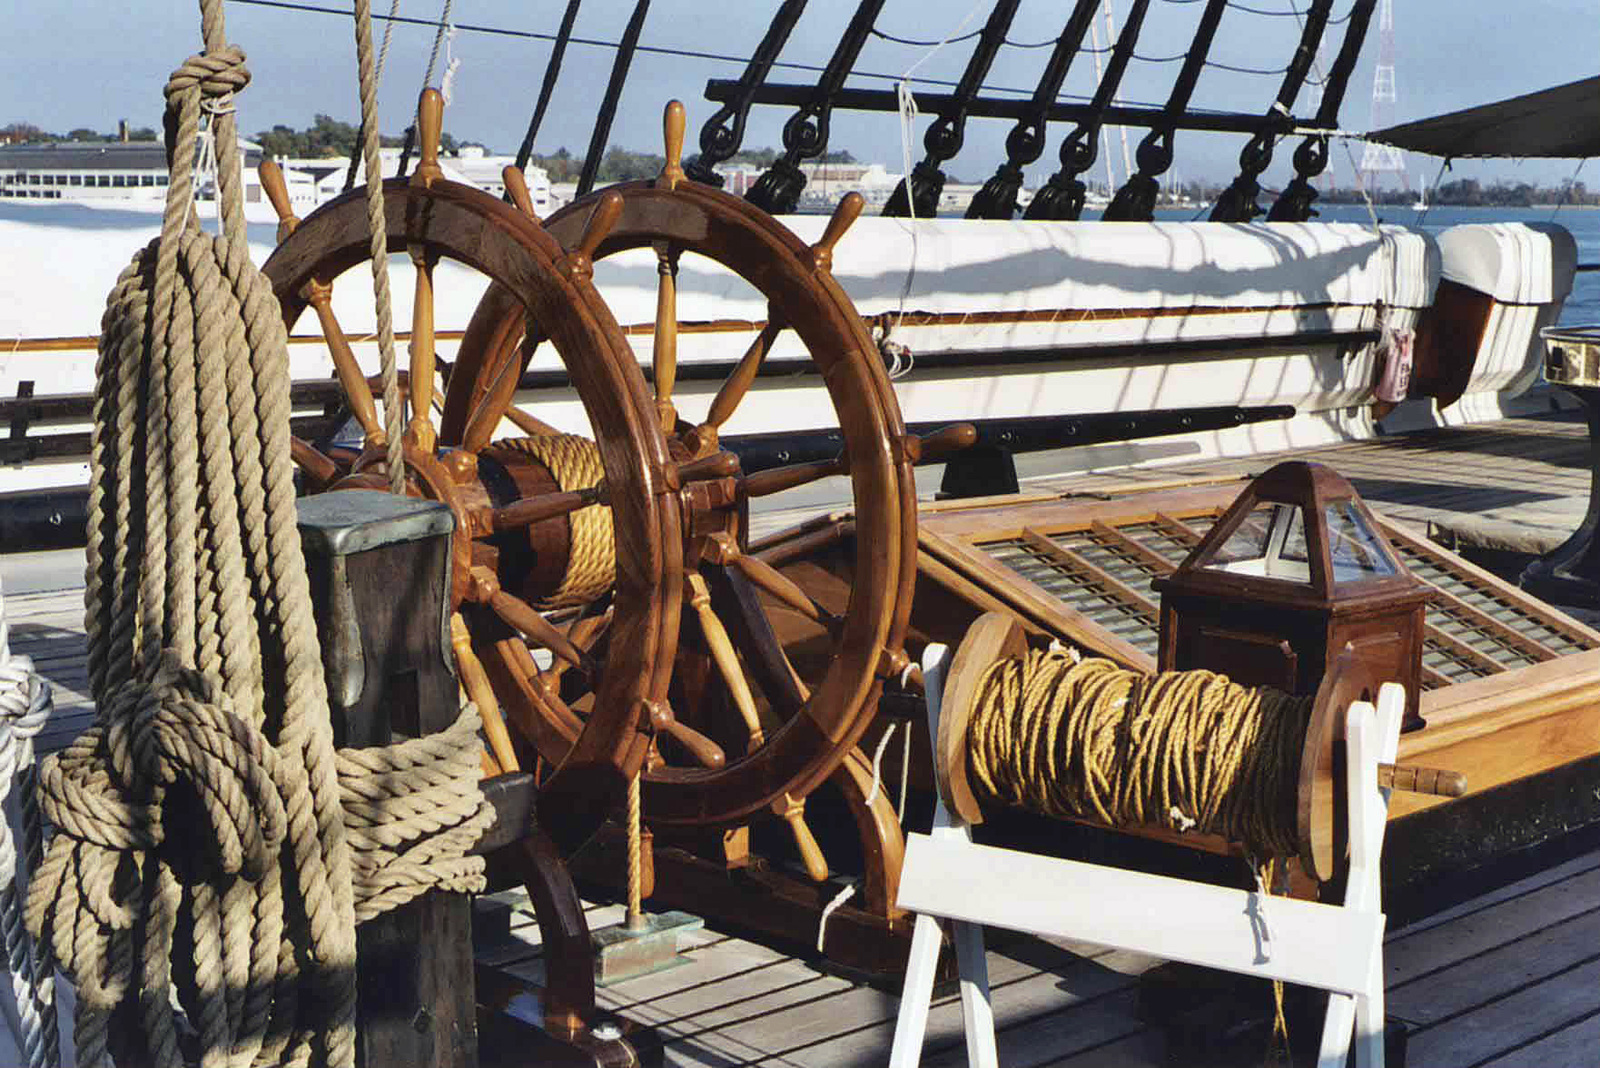 A view of the duel steering wheels onboard the deck of the All Sail, Civil War Era Warship, USS CONSTELLATION, moored to the pier at the US Naval Academy, at Annapolis, Maryland (MD).ryland (MD)